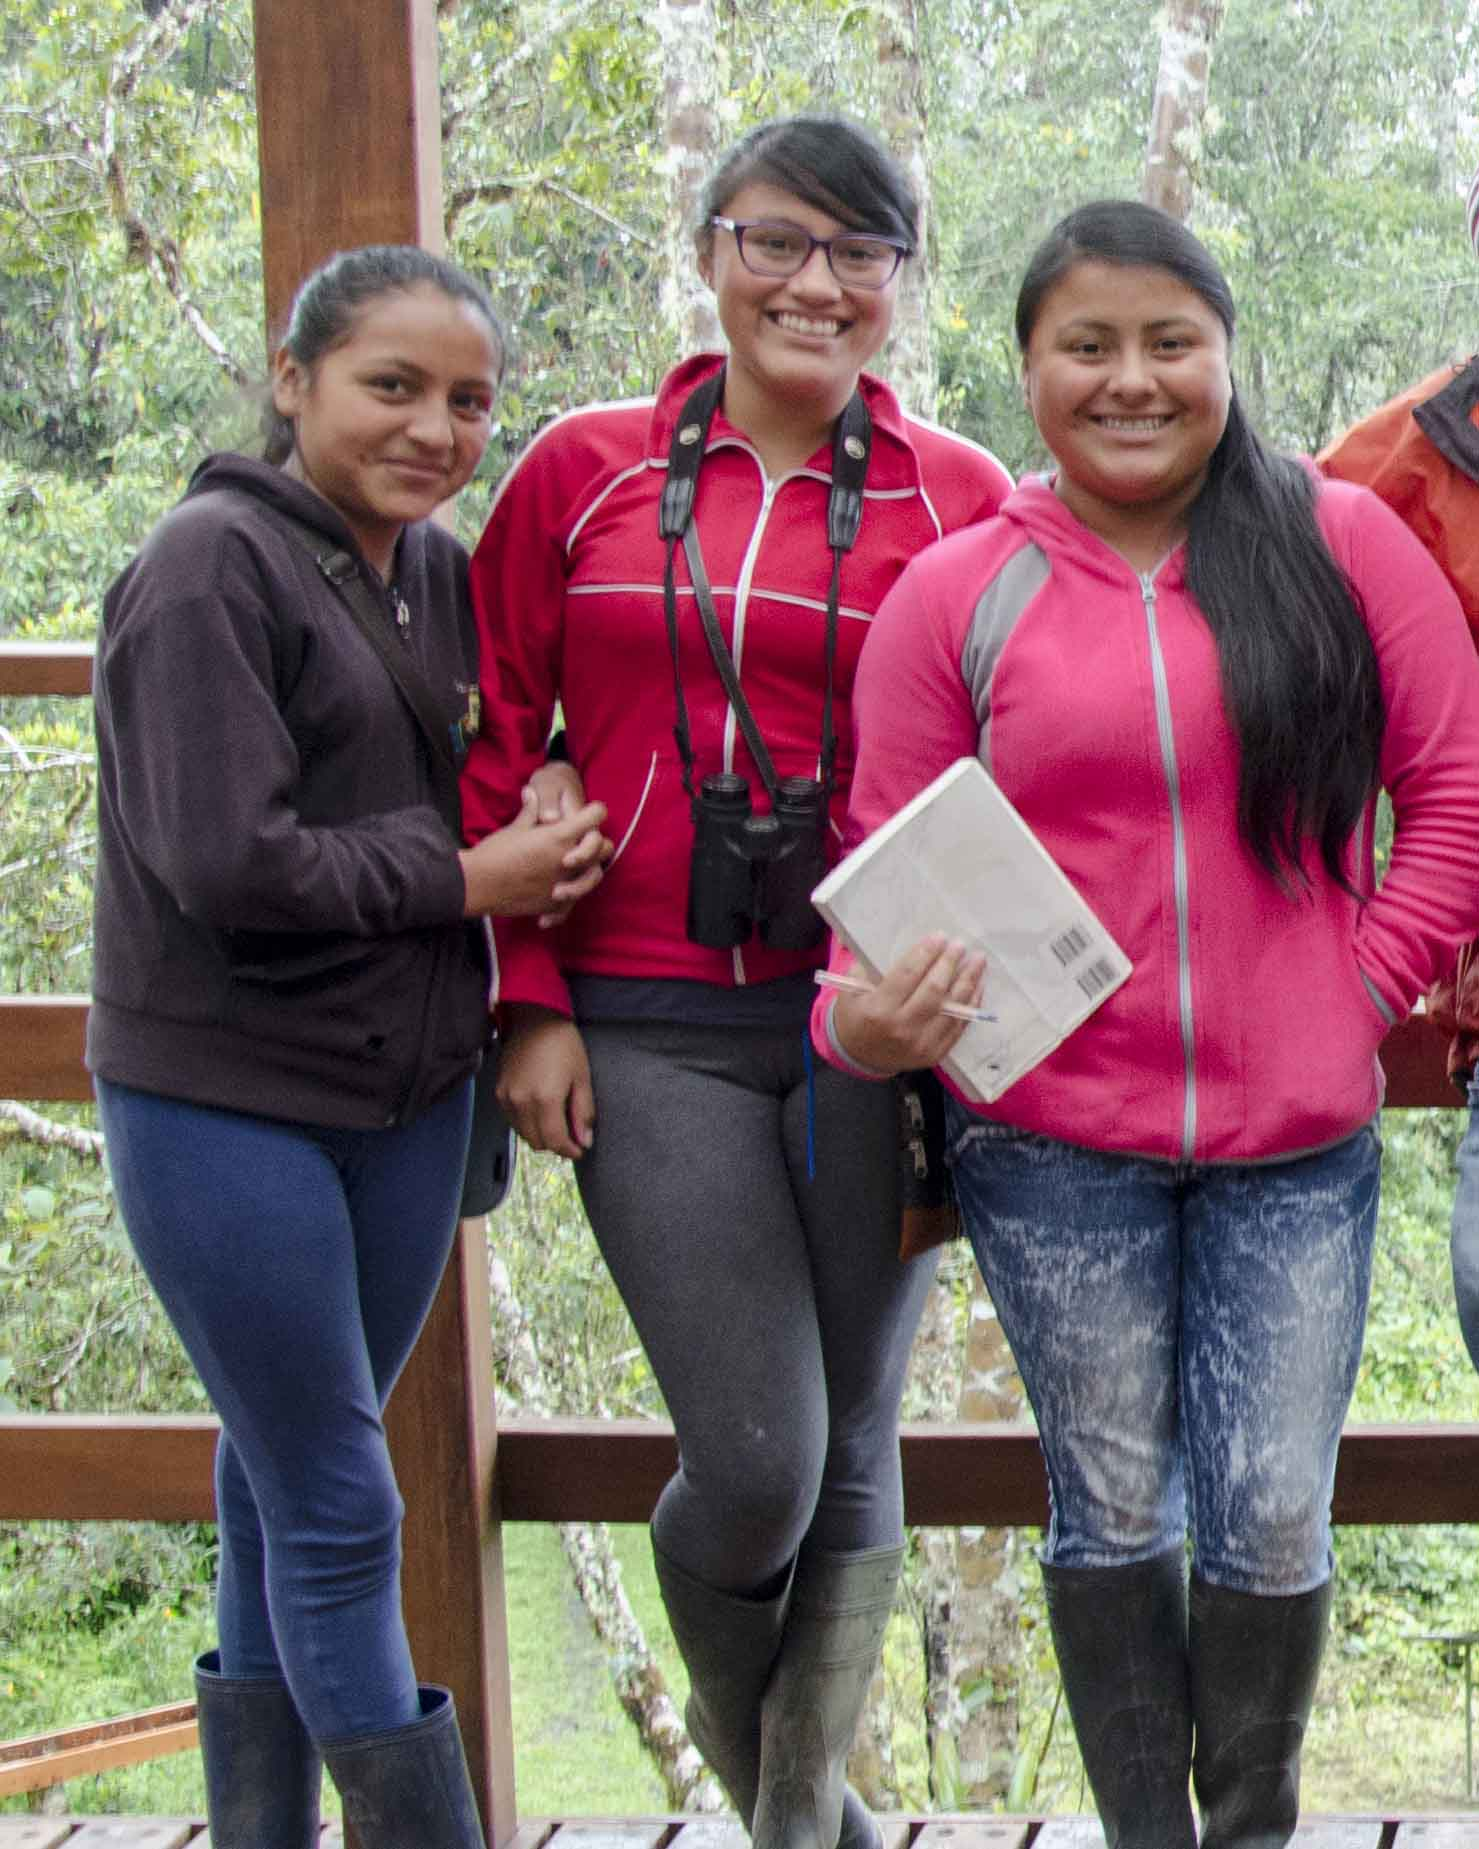 Potential future tour guides from Cosanga, Ecuador | ©Angela Drake